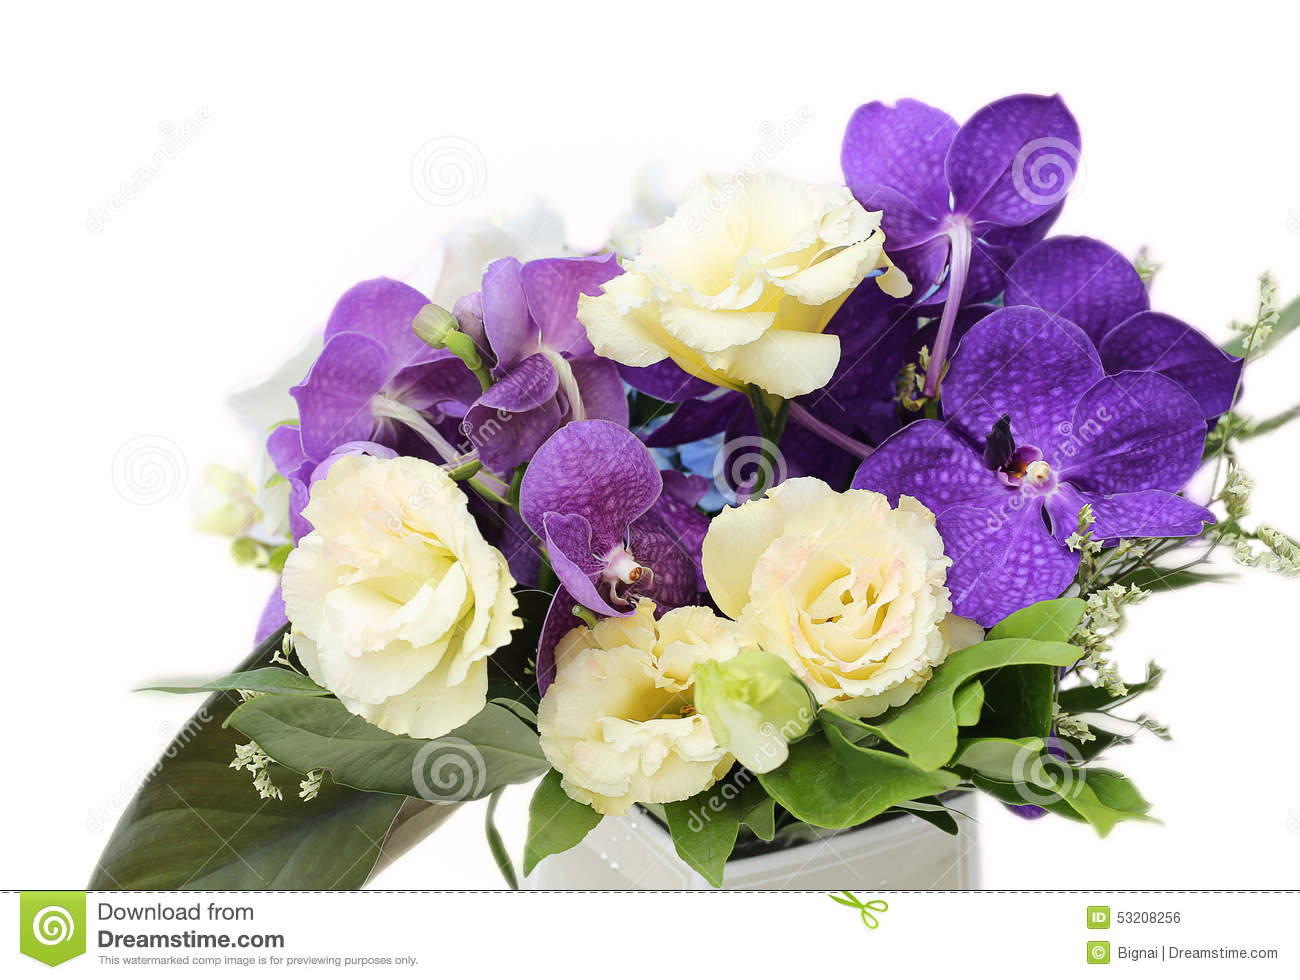 Bouquet With White Orchids, Roses, Hydrangea Flower Stock Photo ...